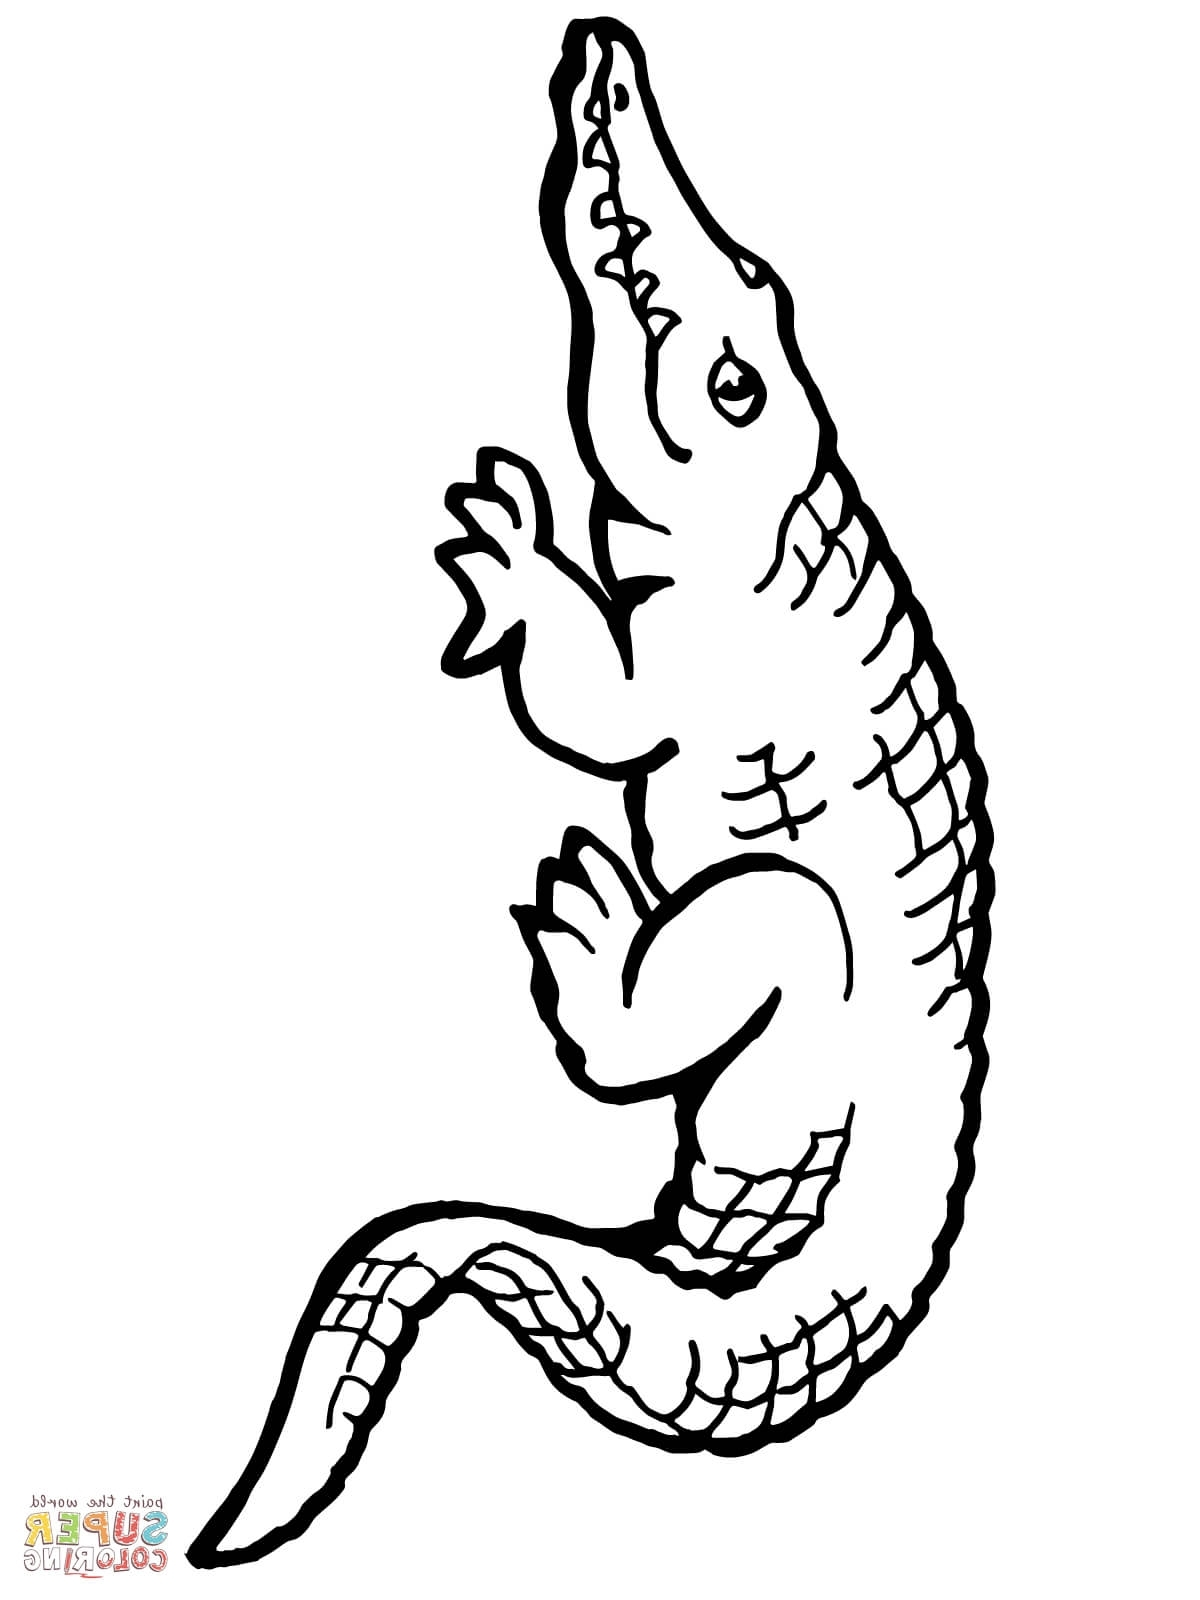 American Alligator Drawing at GetDrawings.com | Free for personal ...